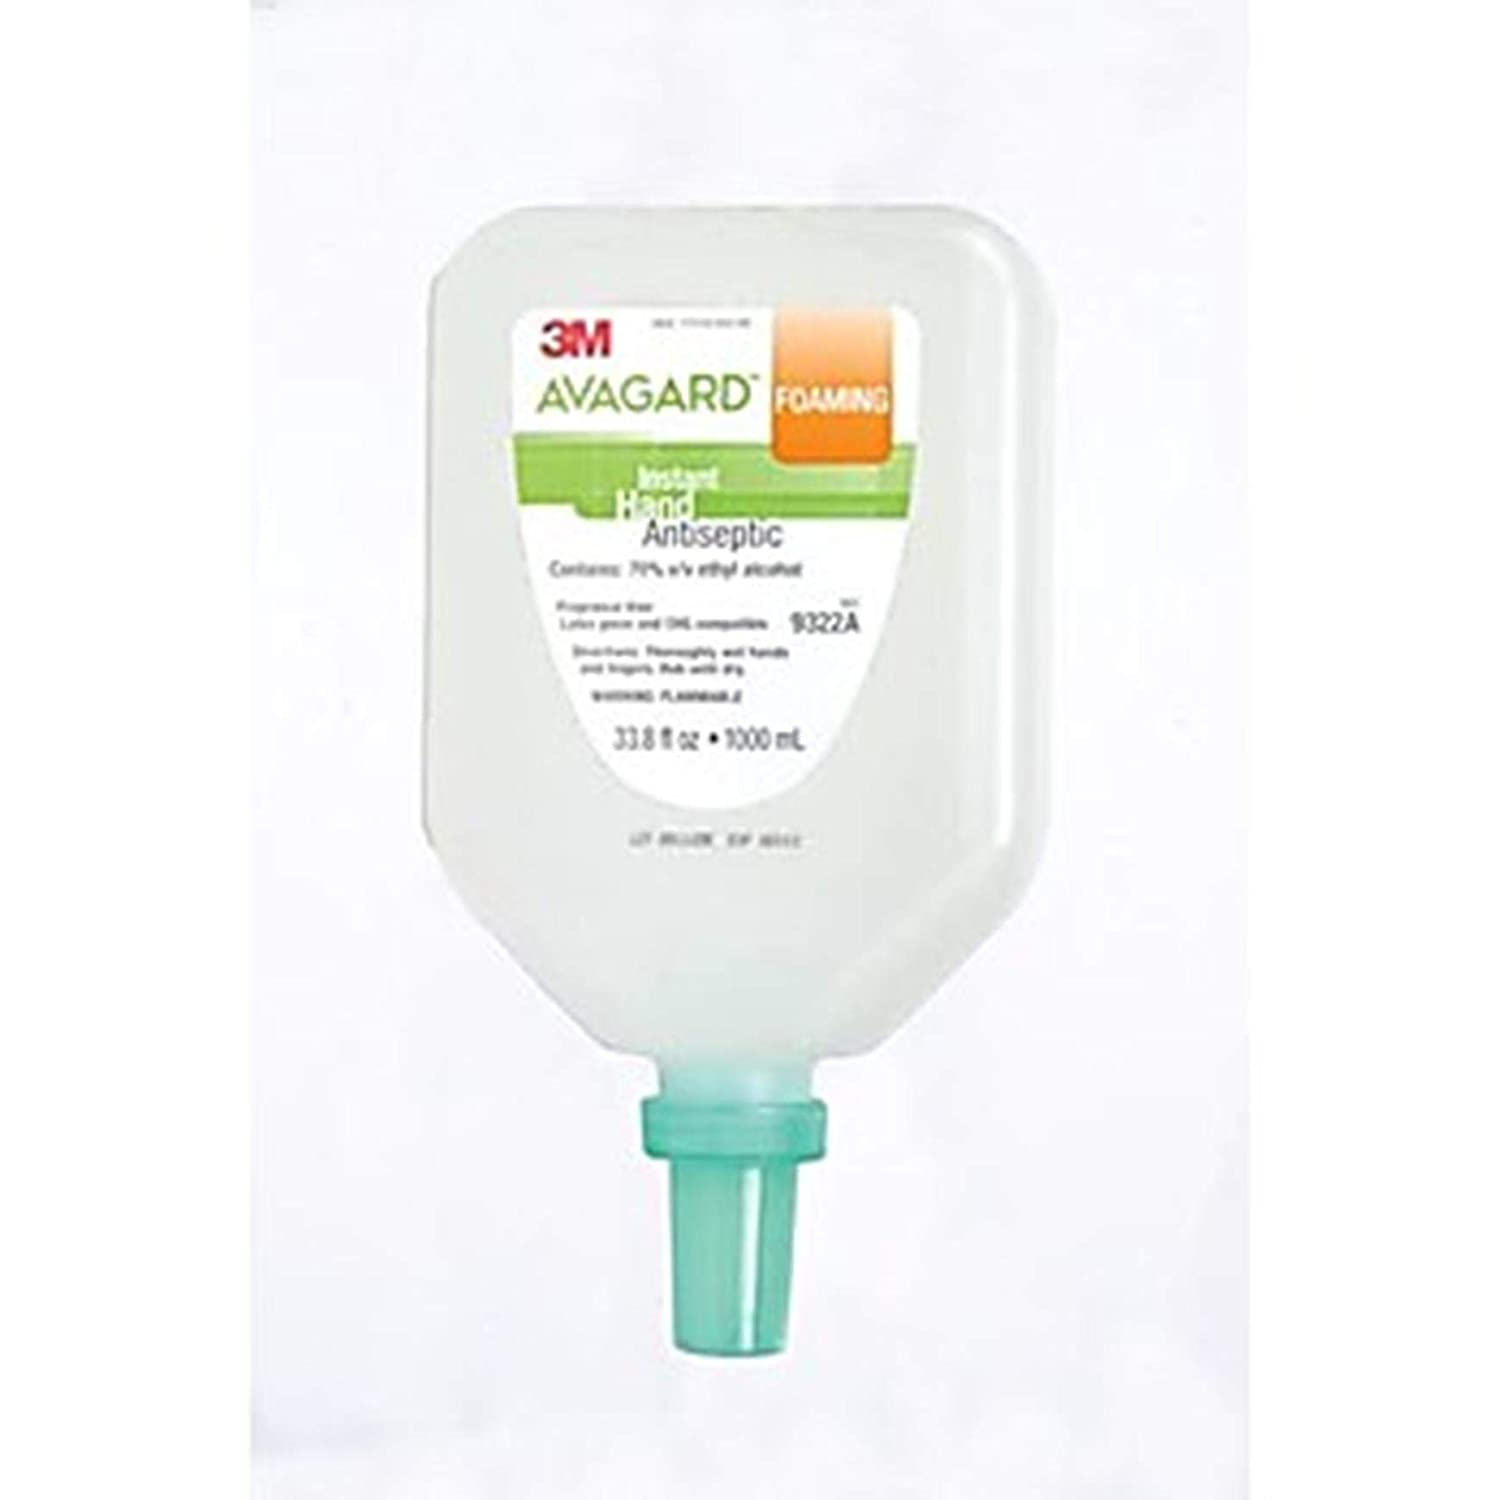 3M Health Care MMM 9321A Avagard Foaming Instant Hand Antiseptic, 500 ml, Pump Bottle (Pack of 12)